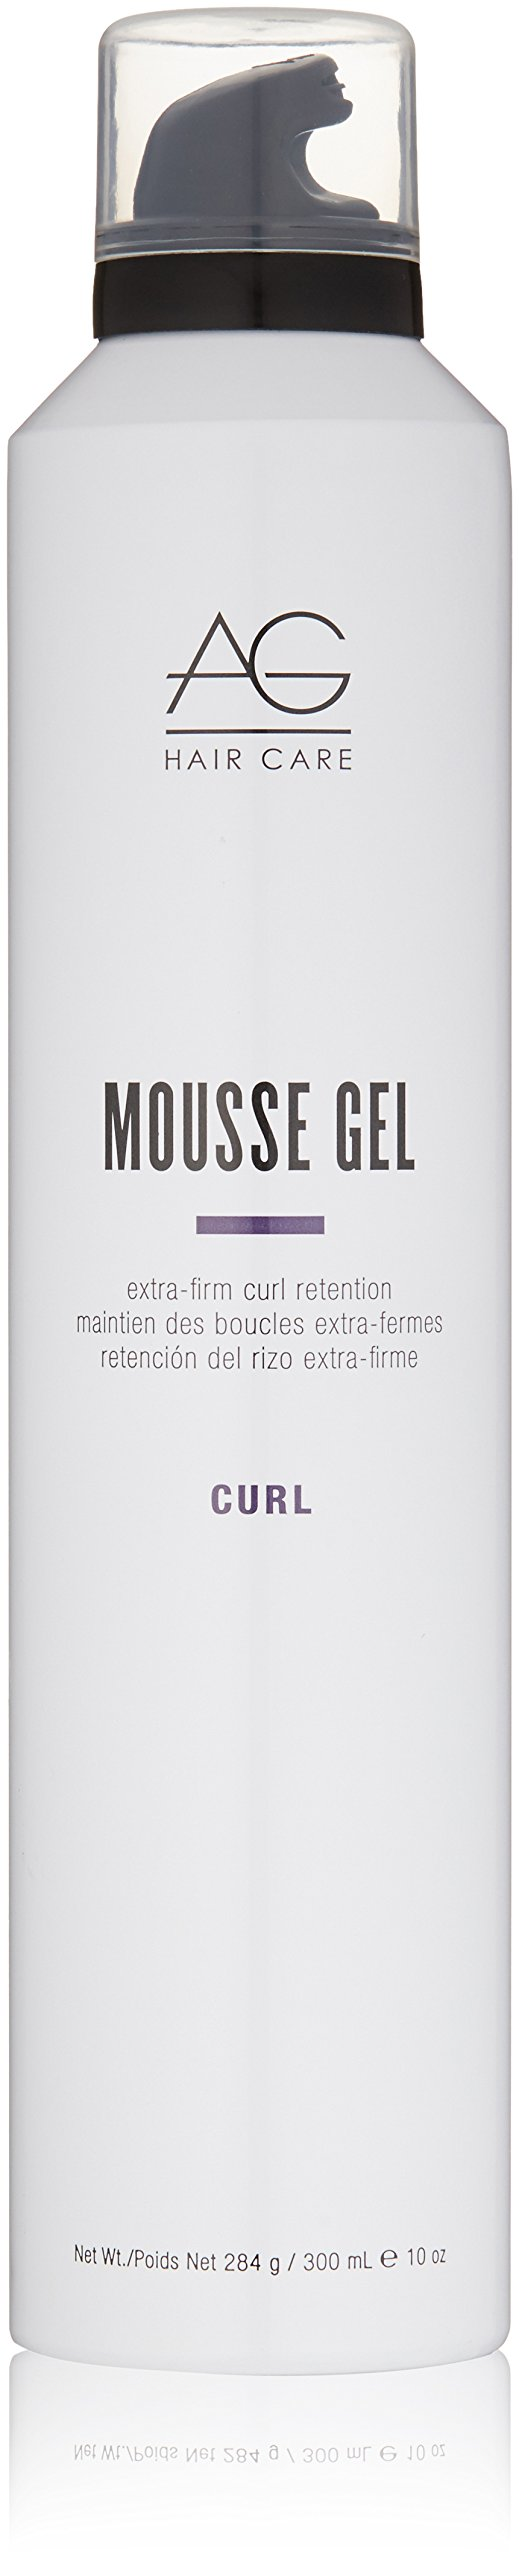 AG Hair Curl Mousse Gel Extra-Firm Curl Retention 10 Fl Oz by AGHair